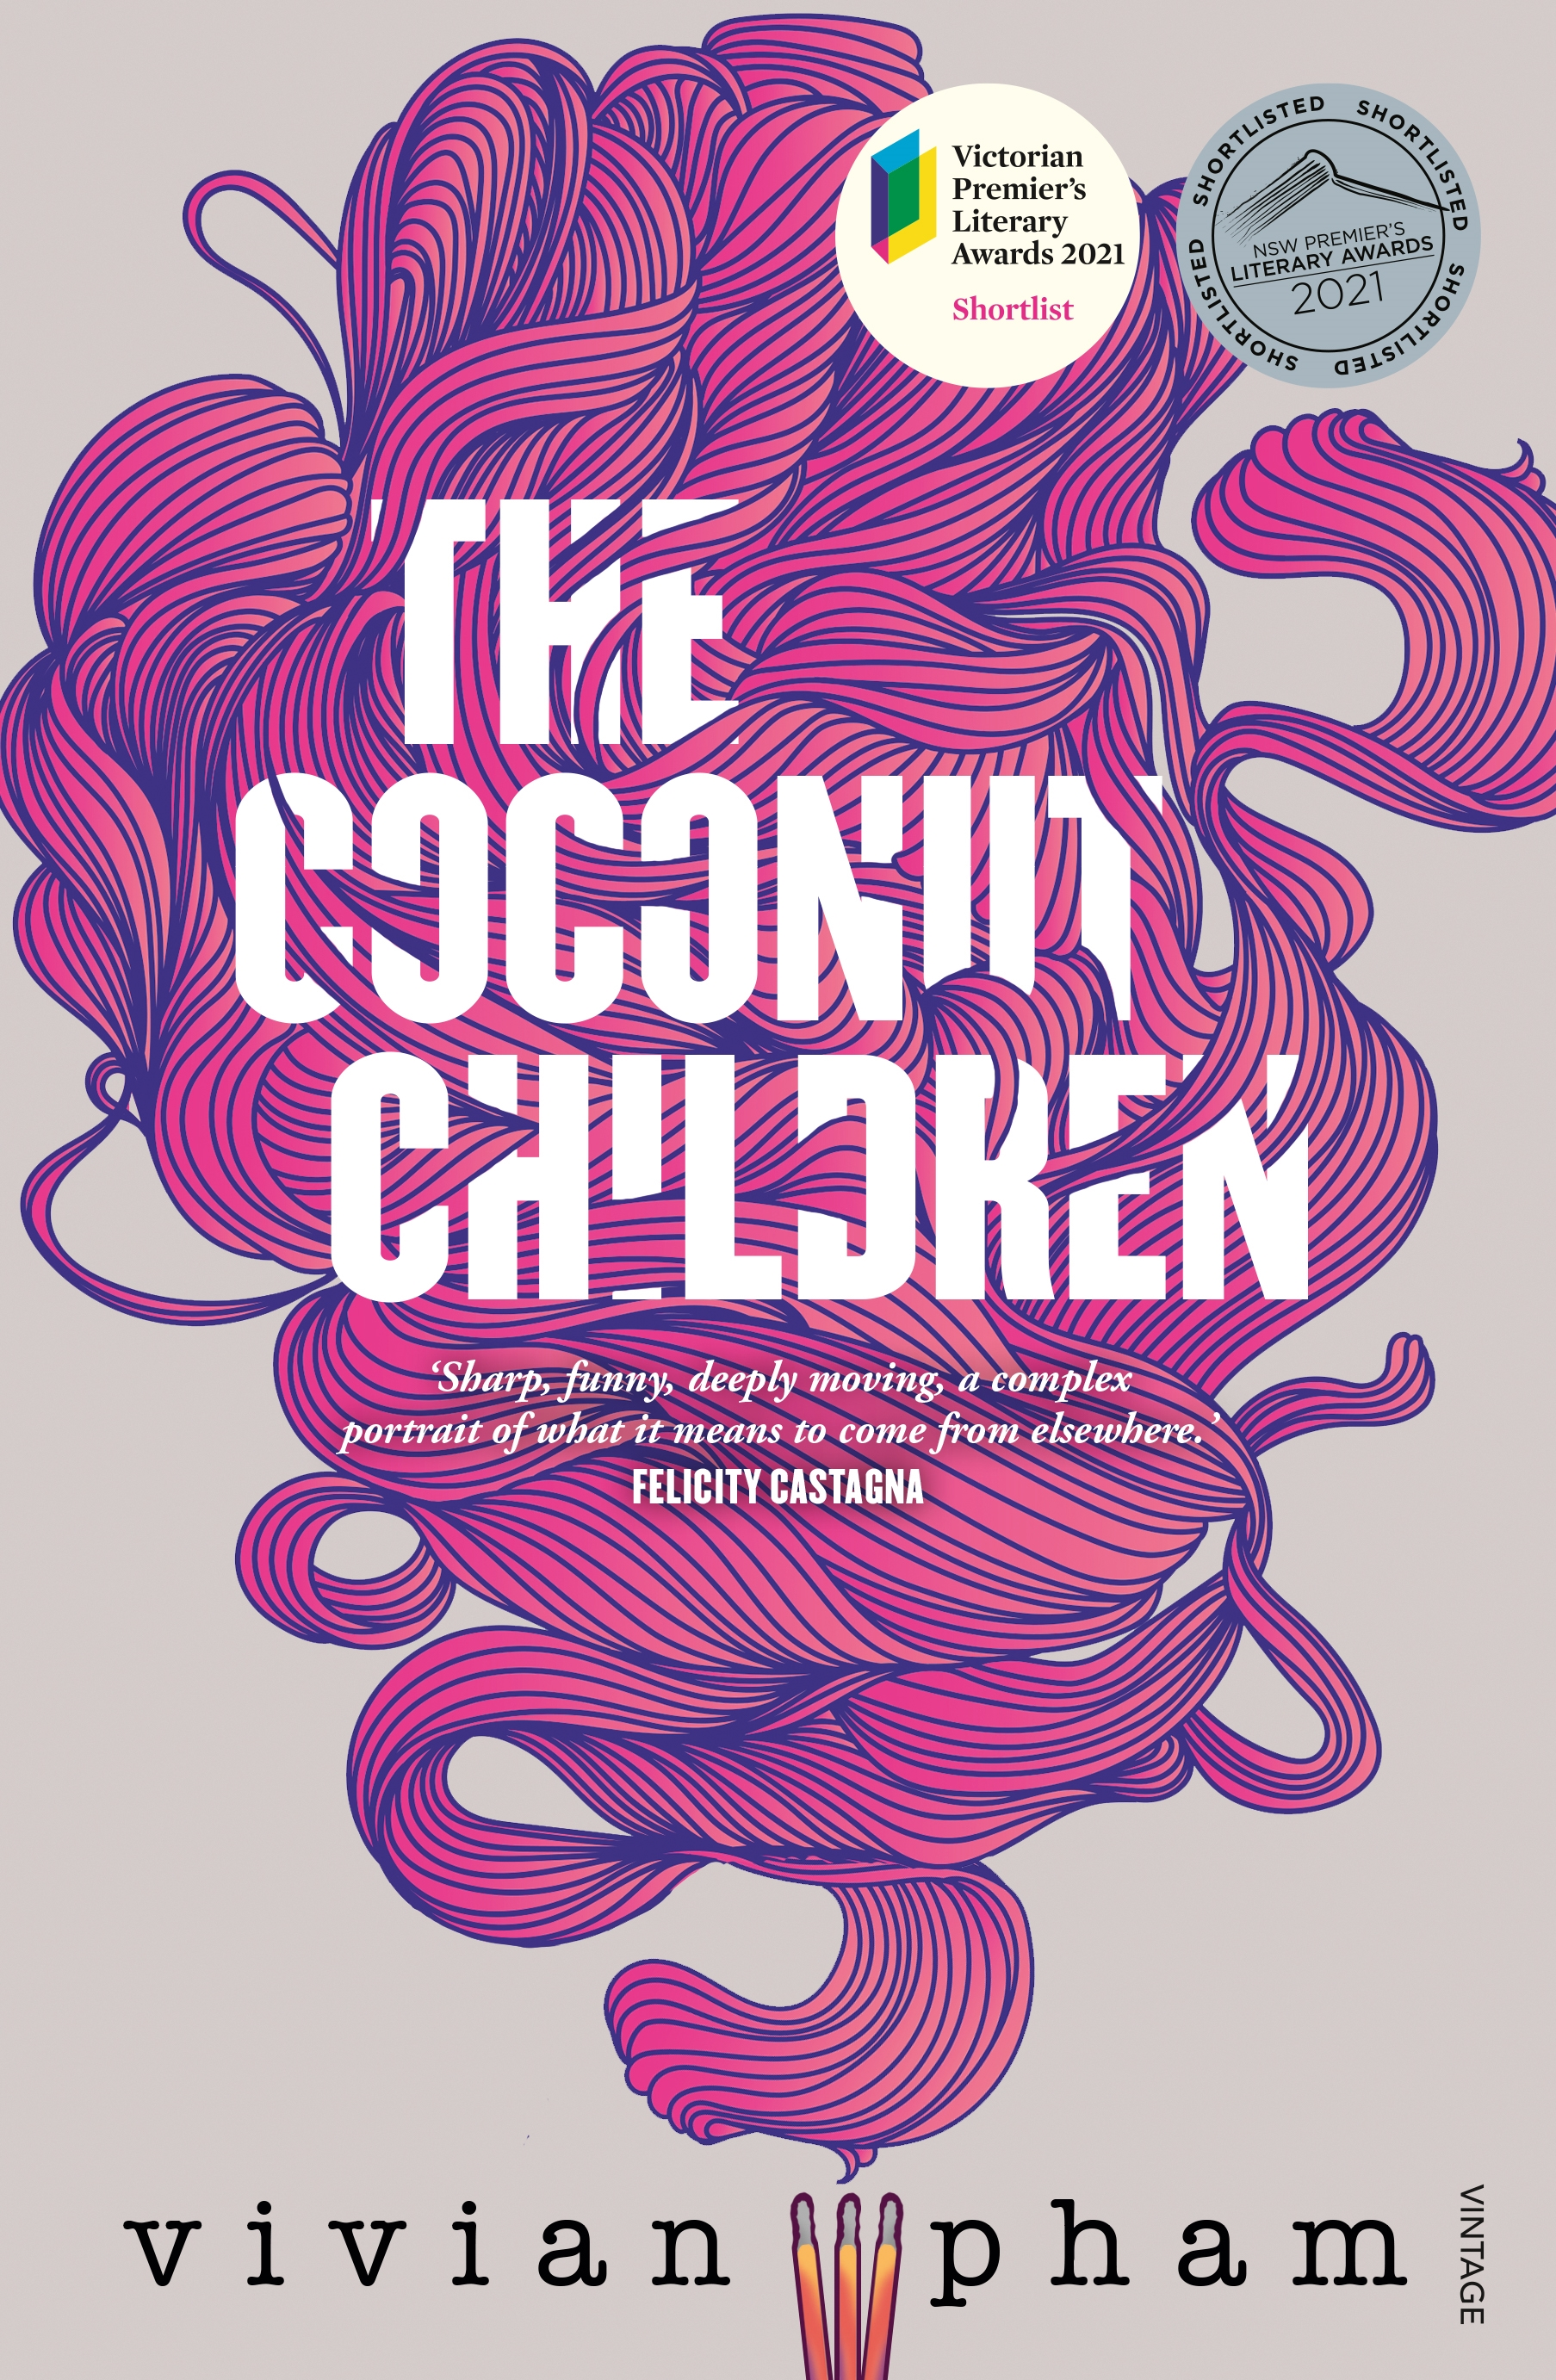 The Coconut Children by Vivian Pham - Penguin Books Australia